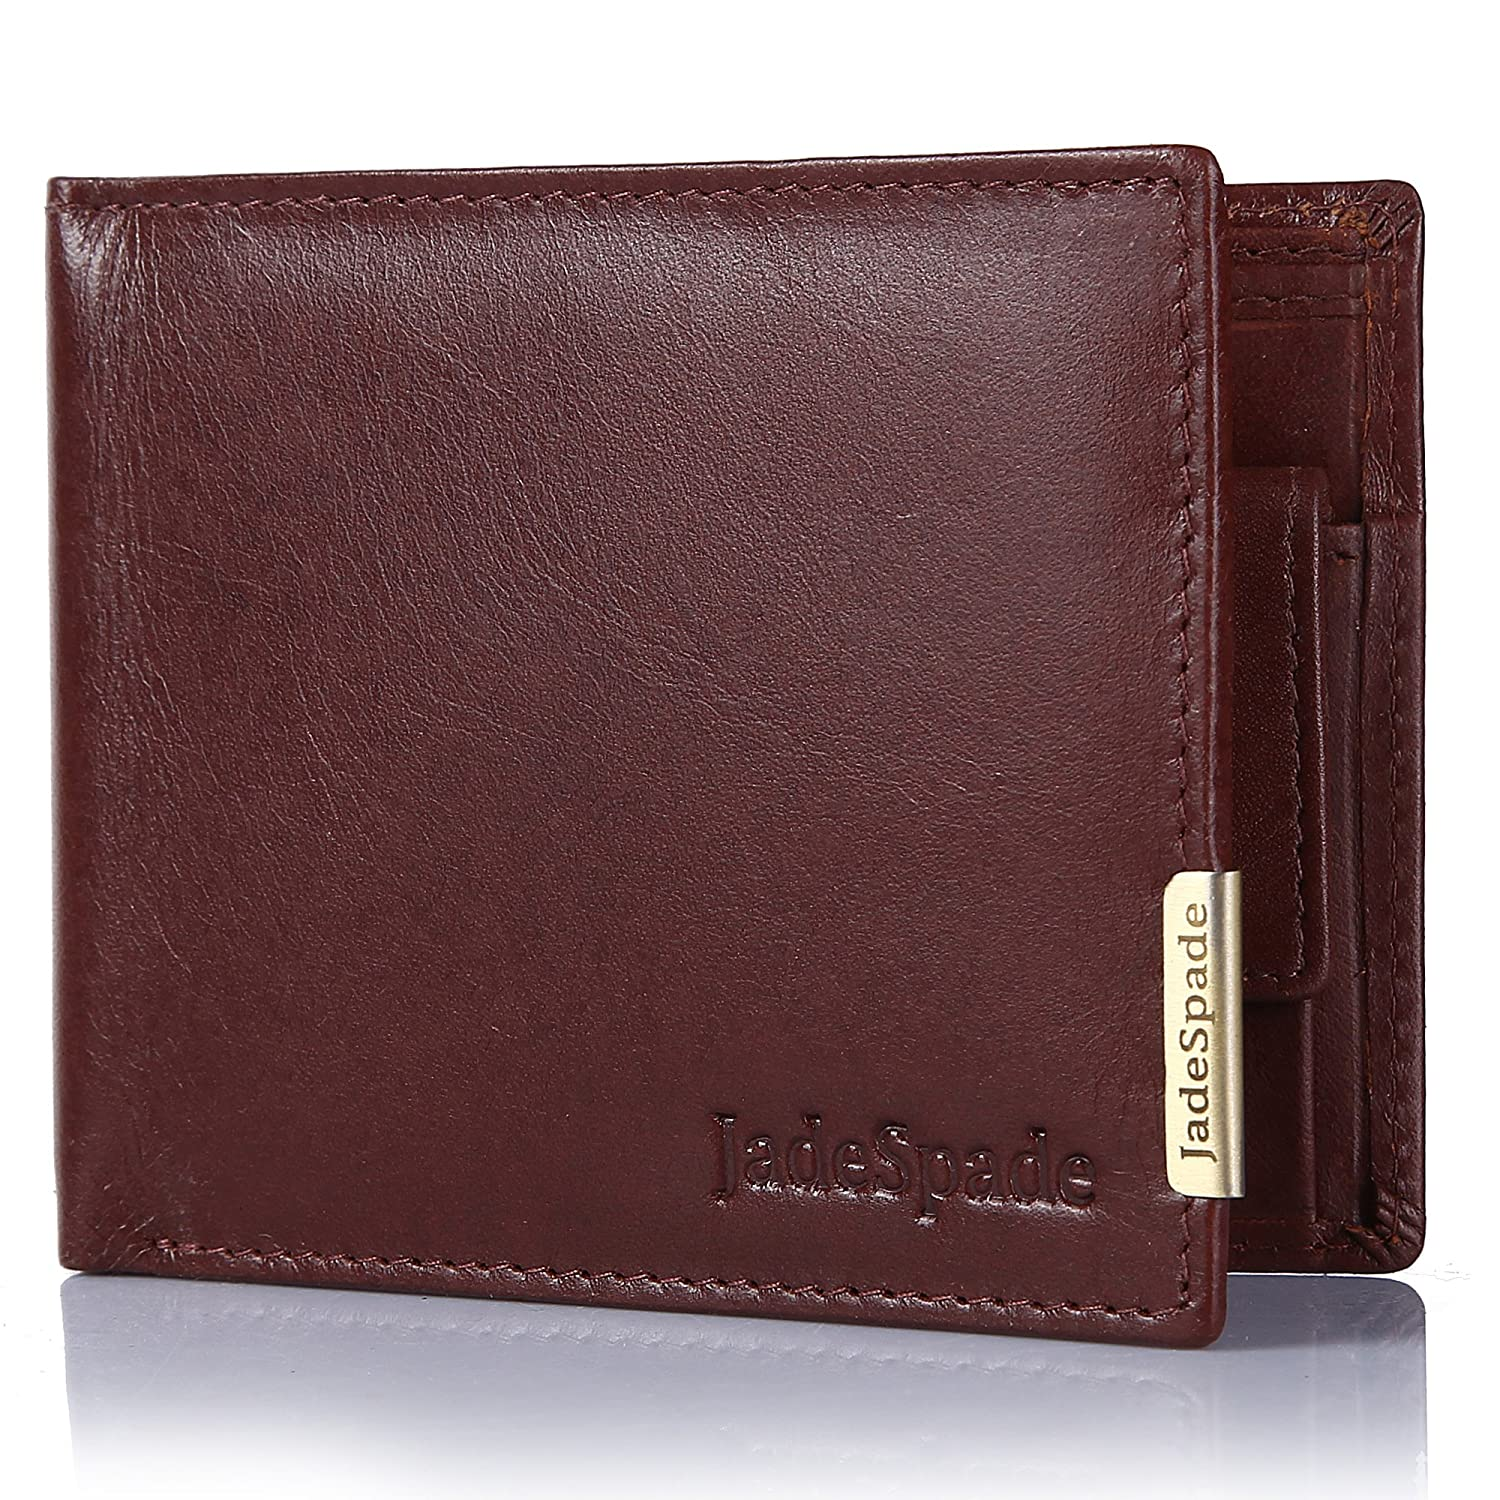 Jade Spade RFID Wallet Bi-Fold Slim Leather Wallet with 8 Card Slots(Cognac Brown)